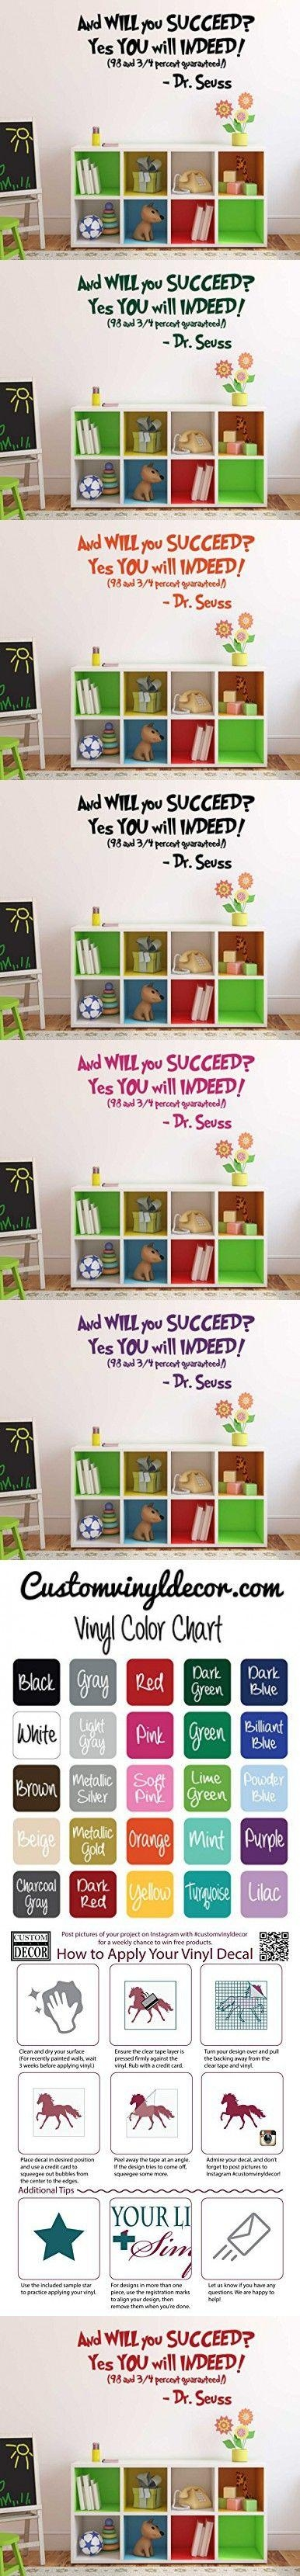 113 Best {Library} Shelves & Signage Images On Pinterest | Library Regarding Preschool Classroom Wall Decals (View 19 of 20)